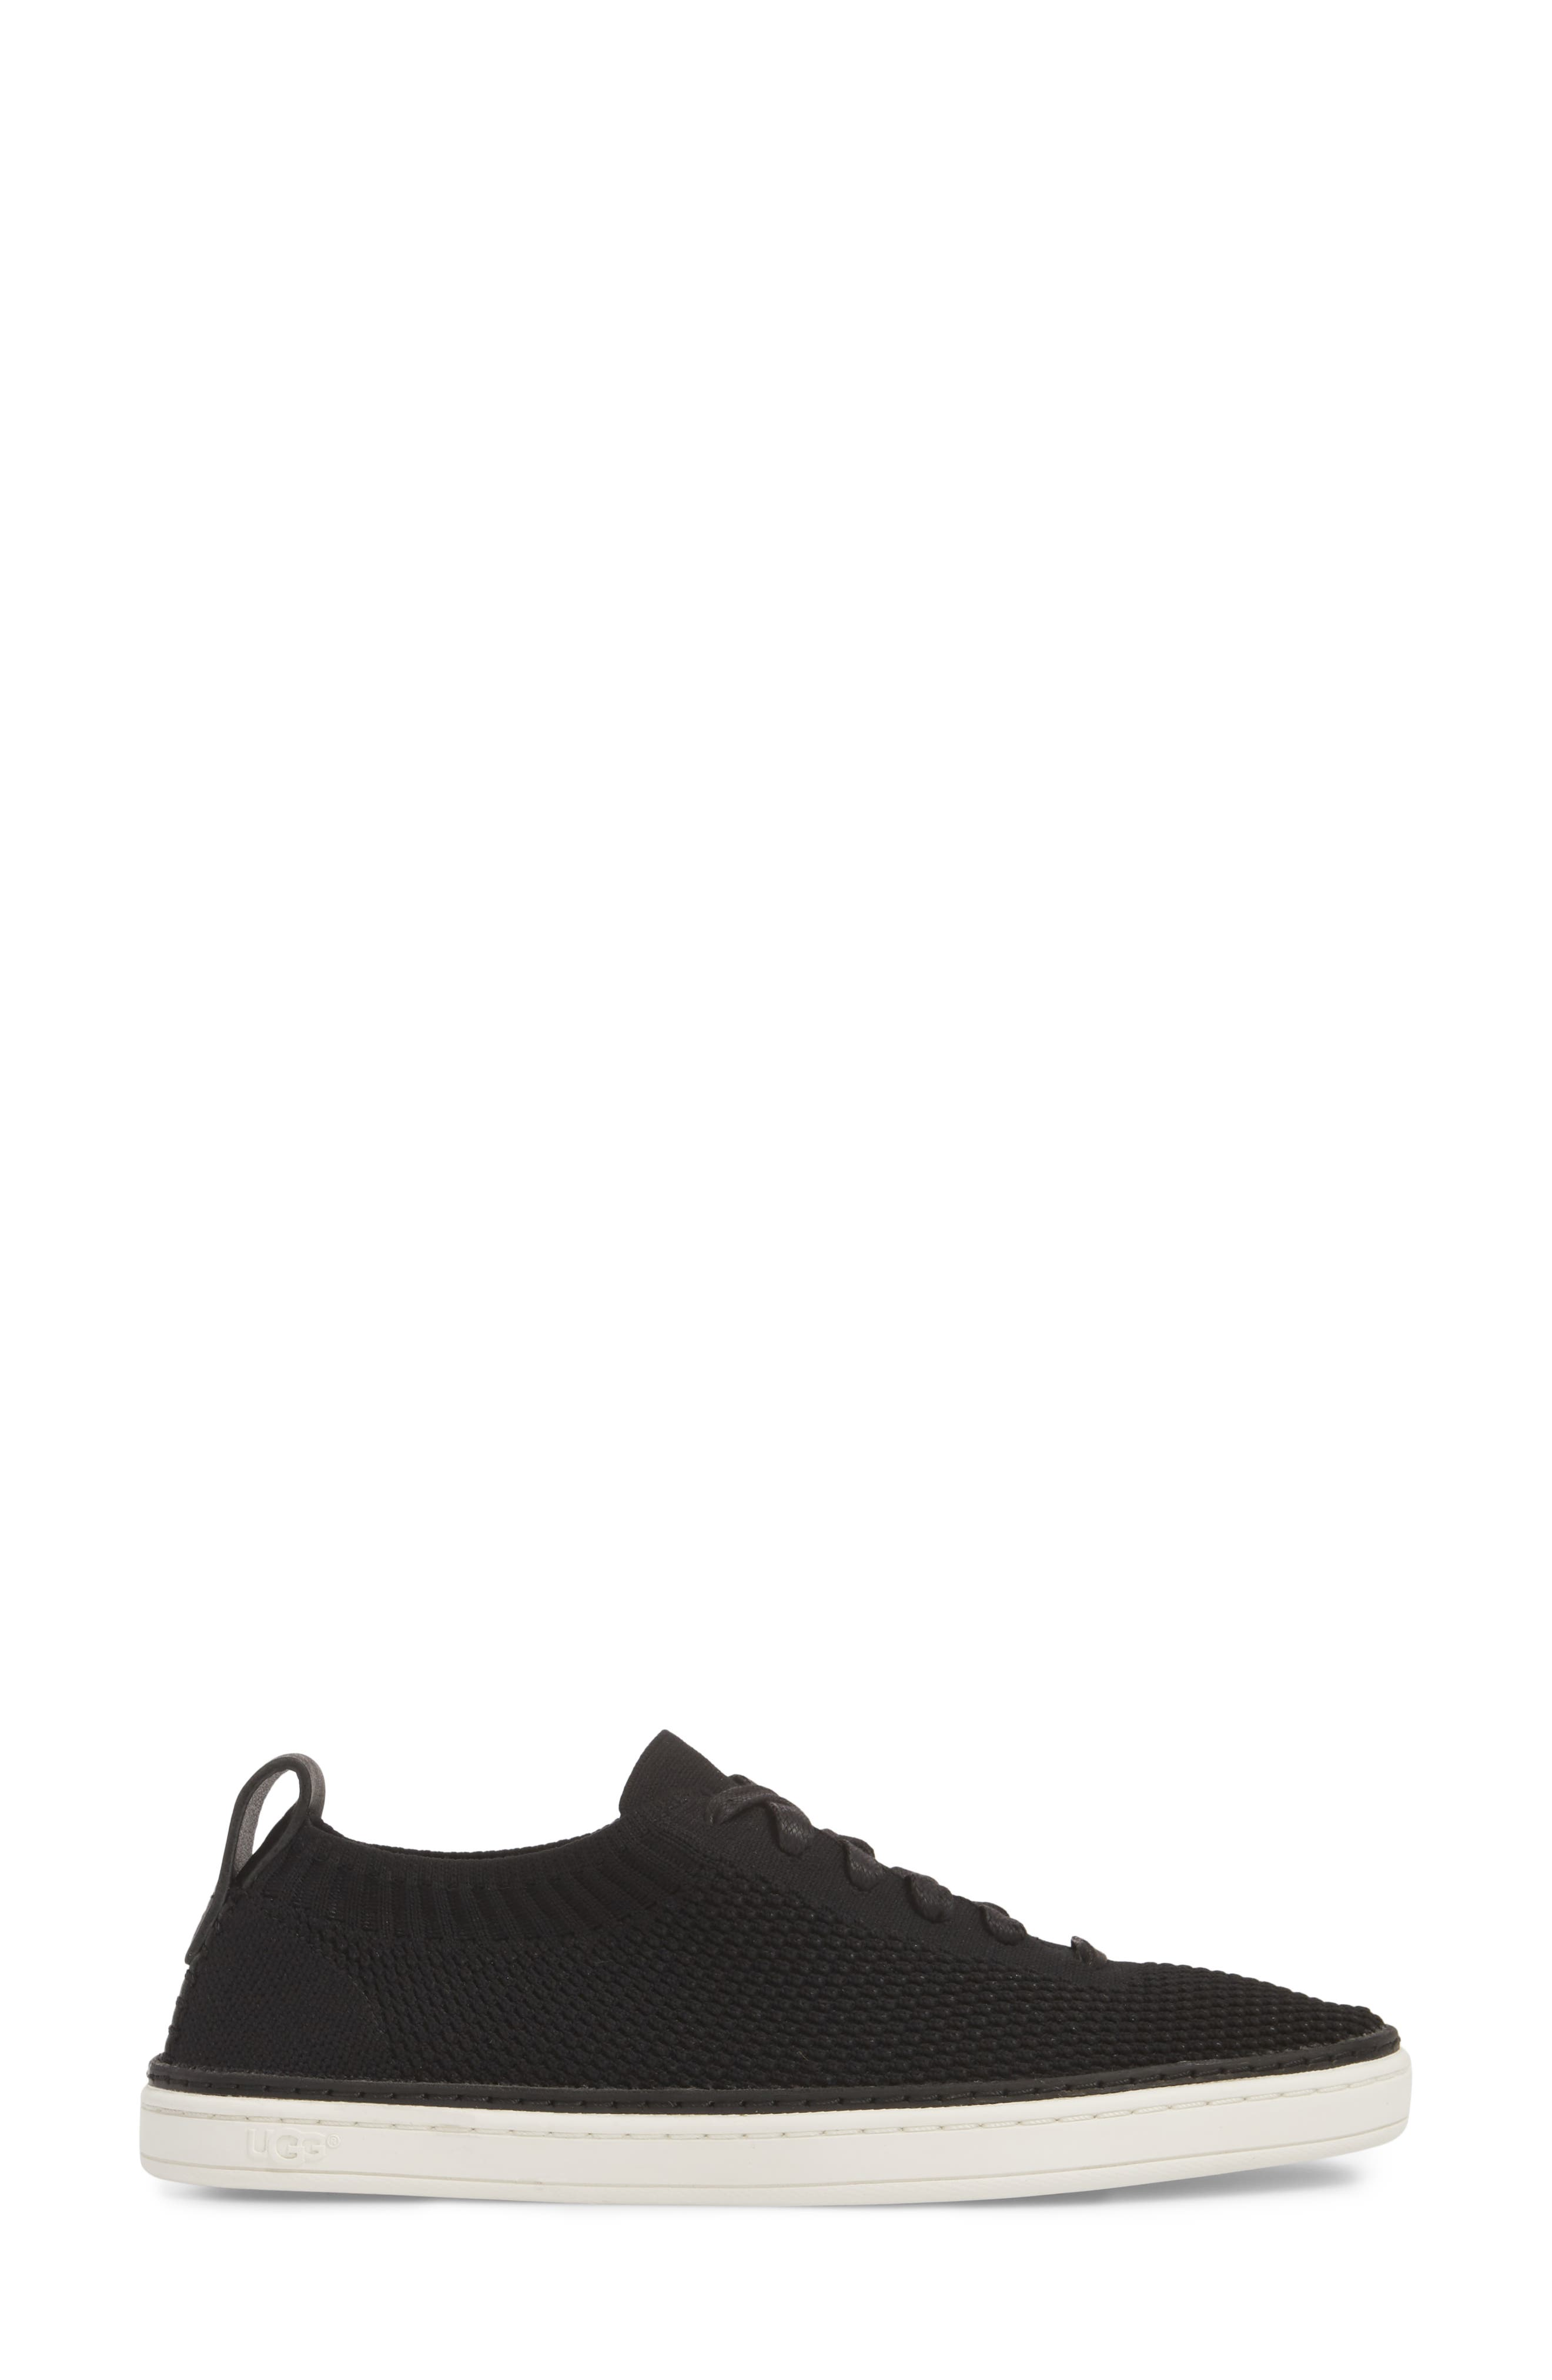 UGG<SUP>®</SUP>, Sidney Sneaker, Alternate thumbnail 3, color, BLACK FABRIC